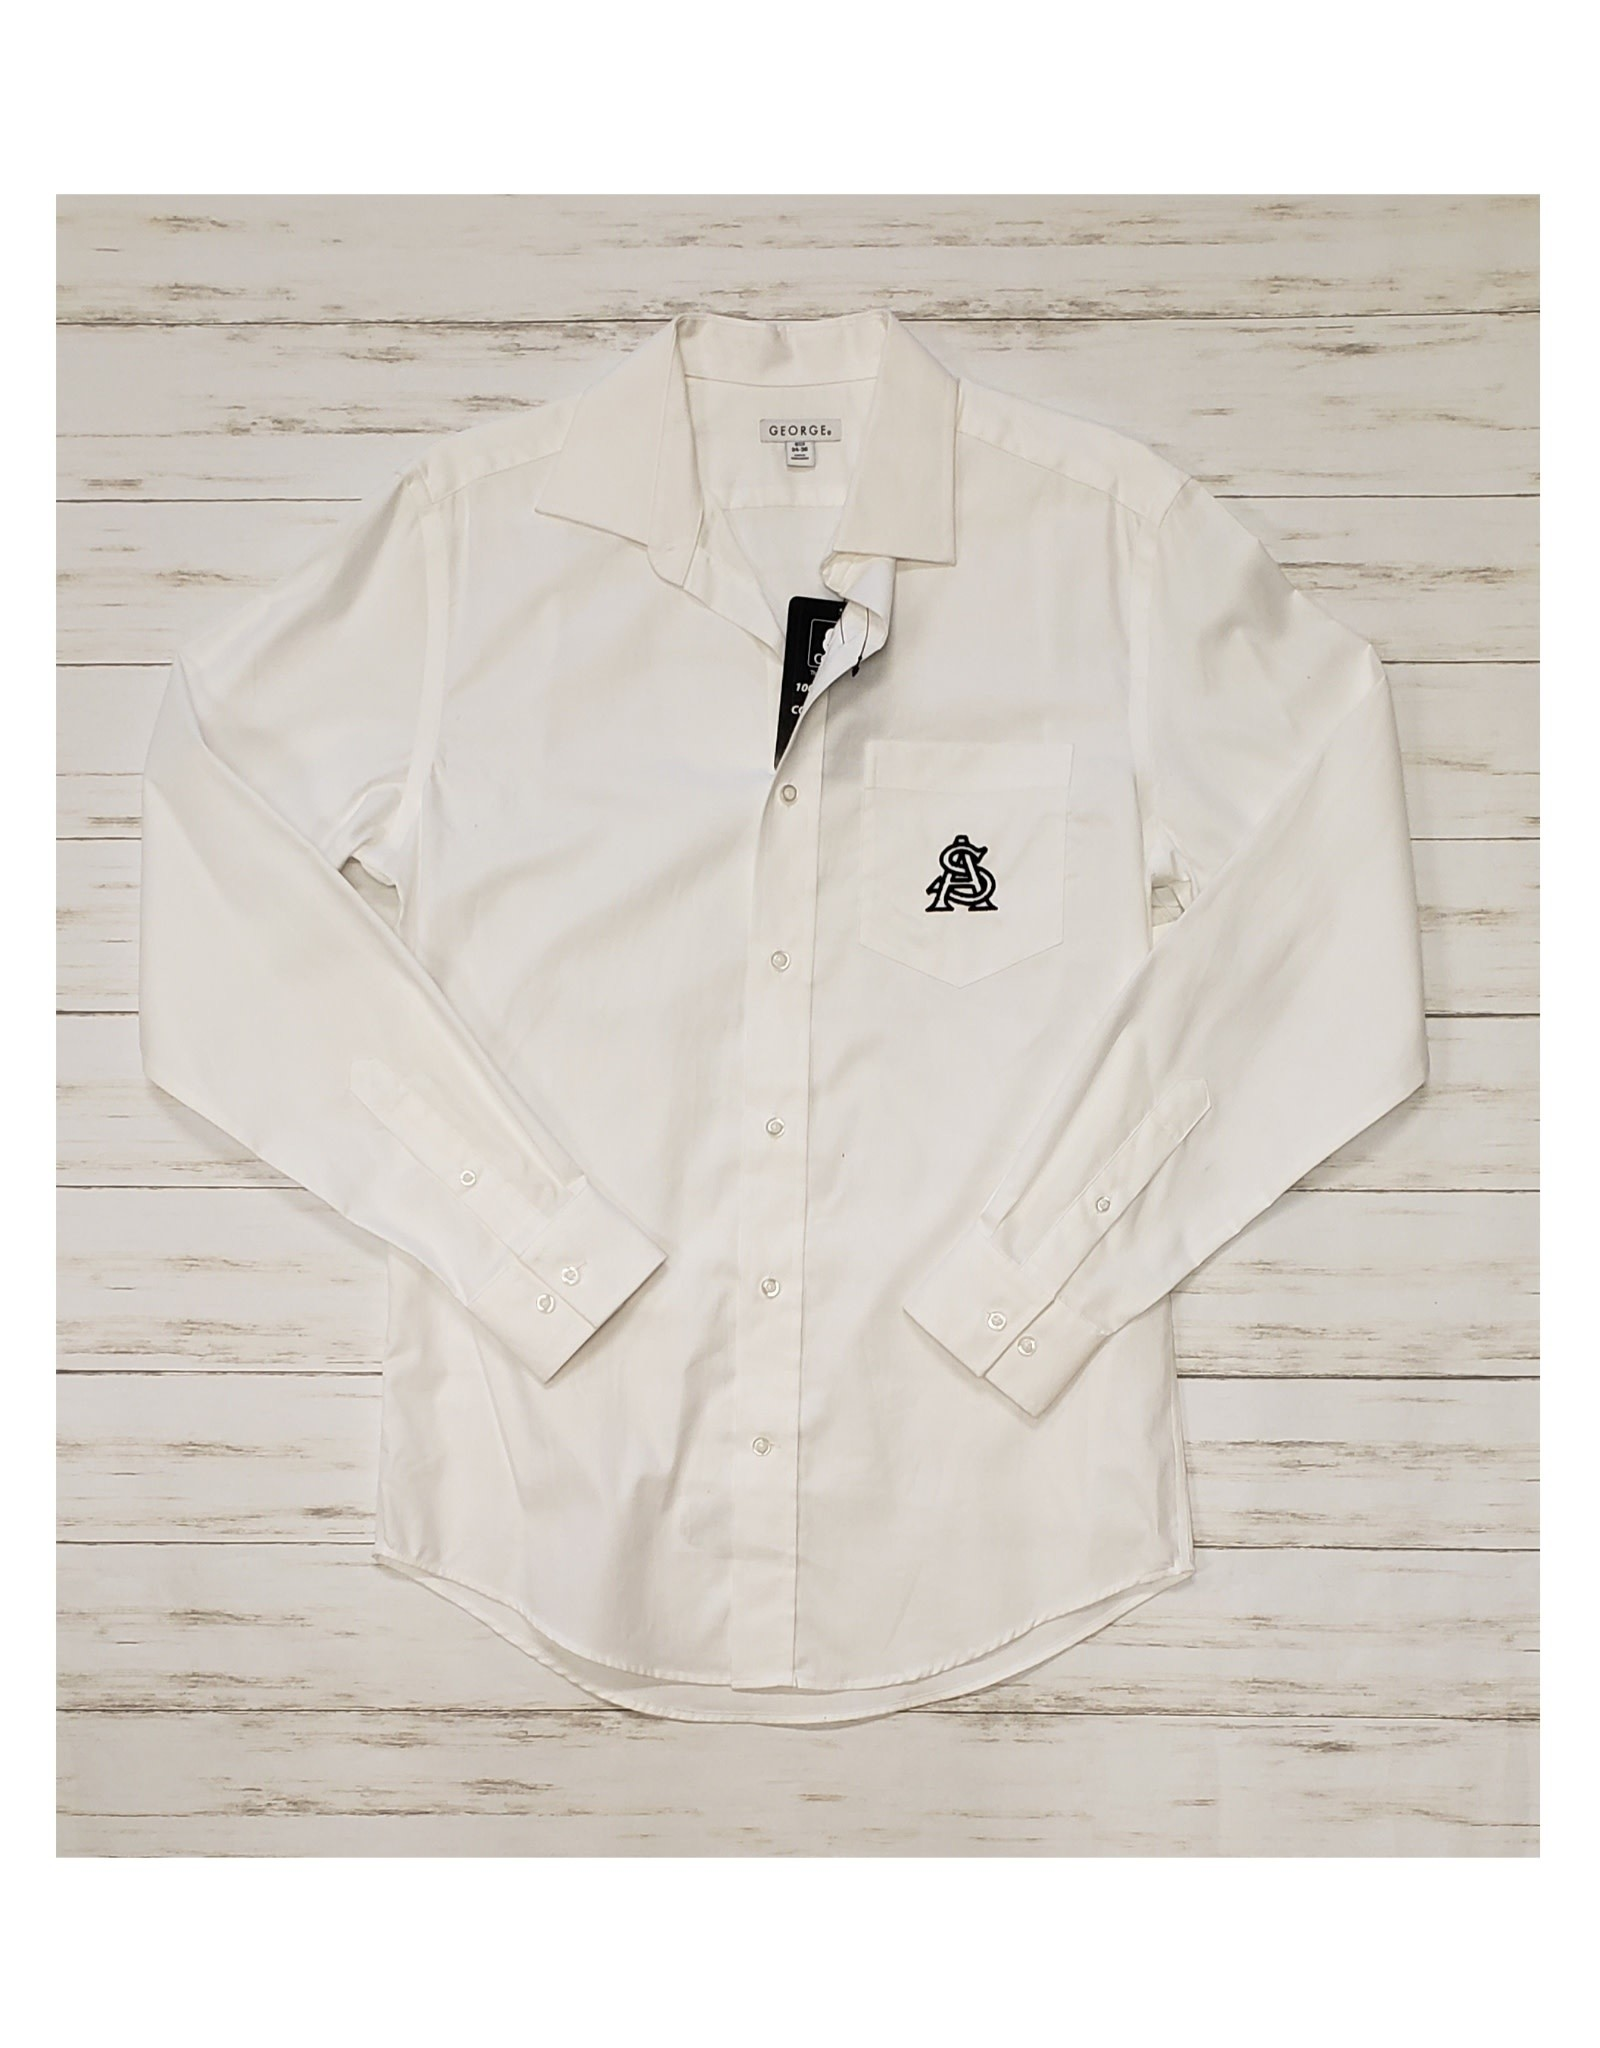 STA Embroidered Ladies L/S Button Up (Small)